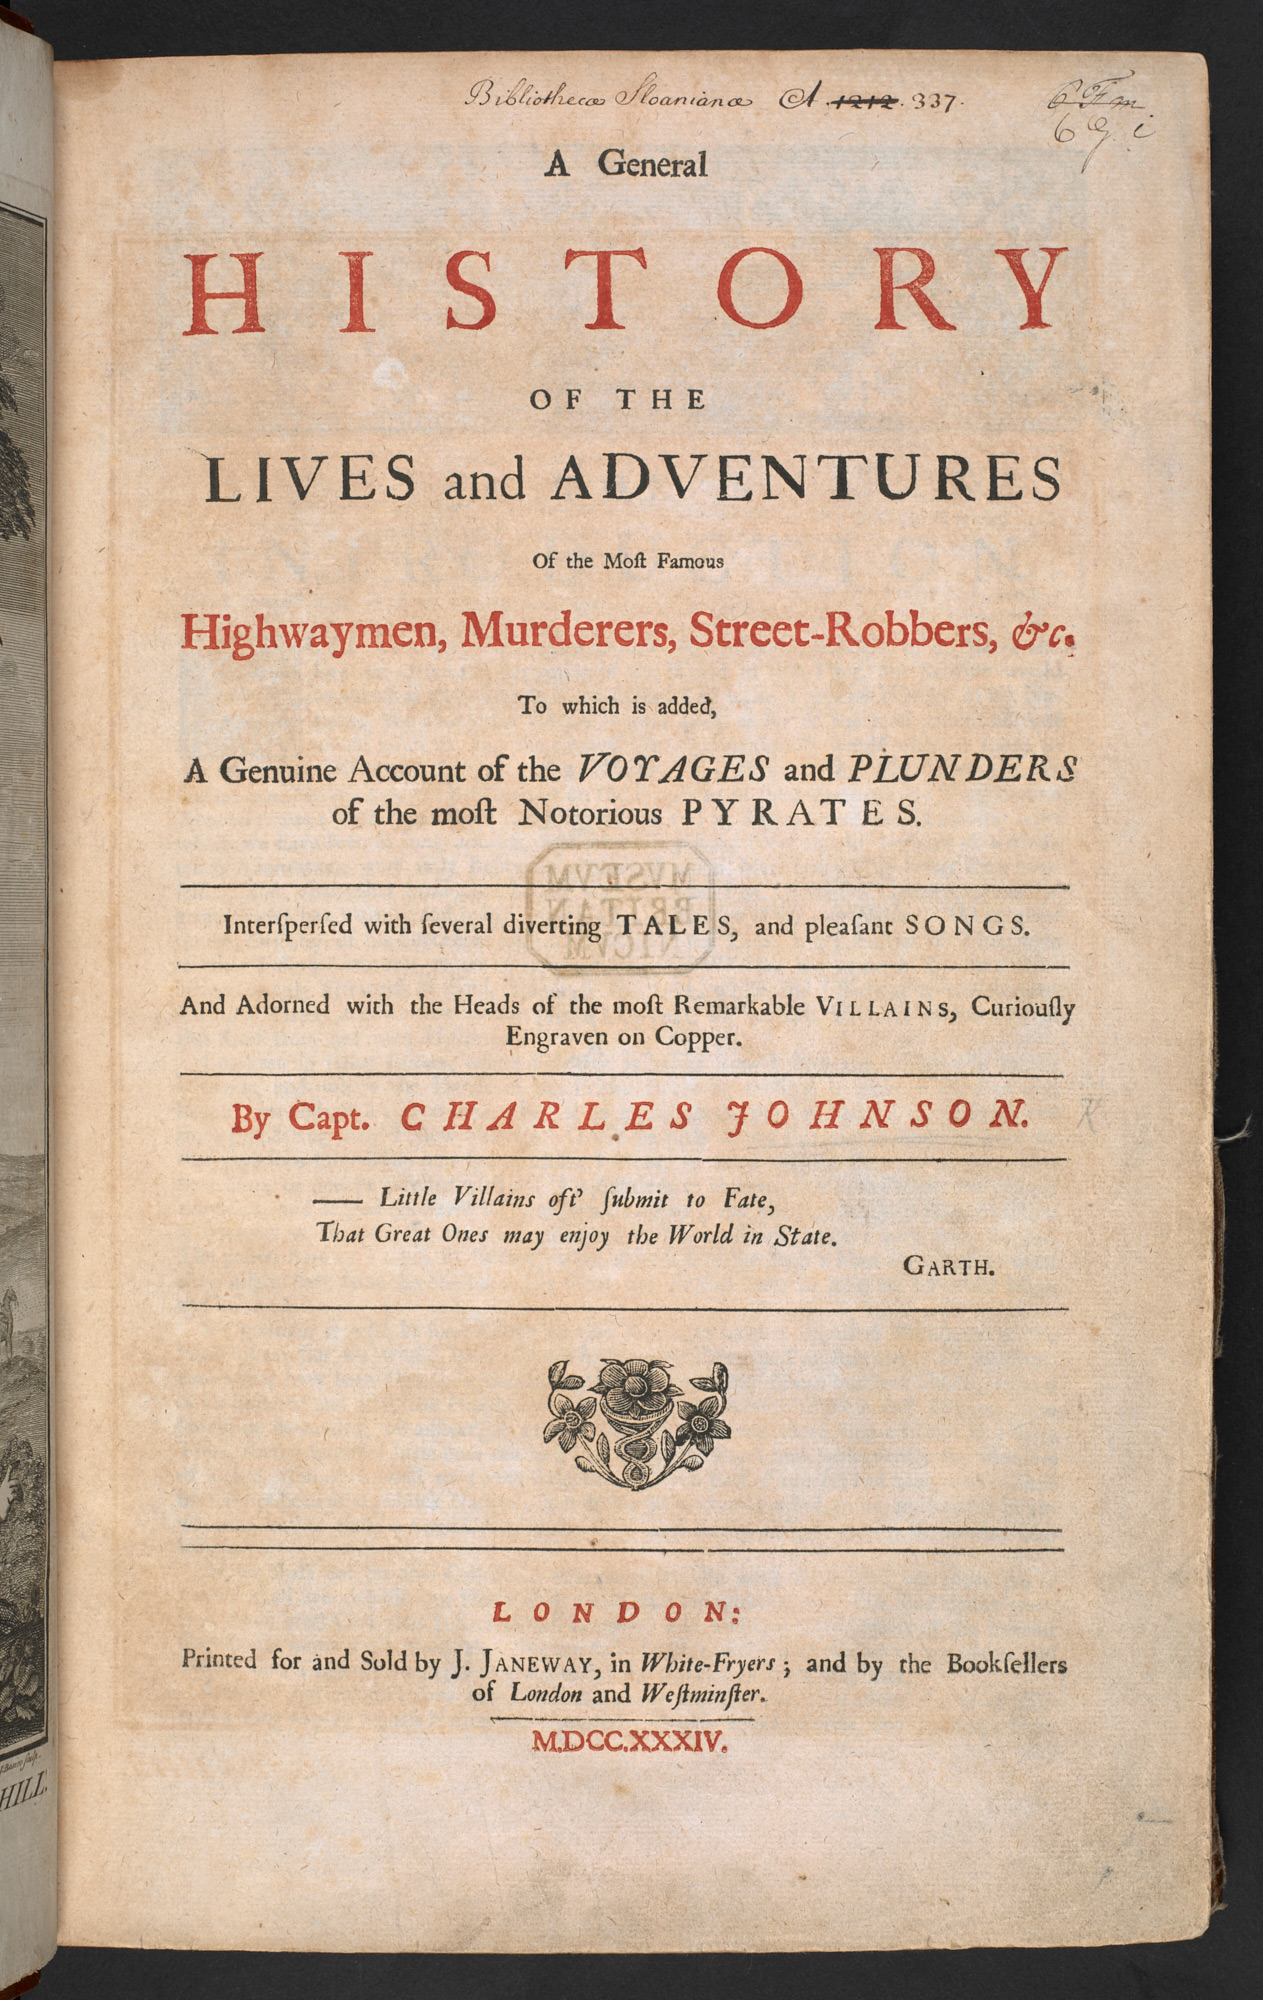 A General History of the Lives and Adventures of the Most Famous Highwaymen, Murderers, Street-Robbers